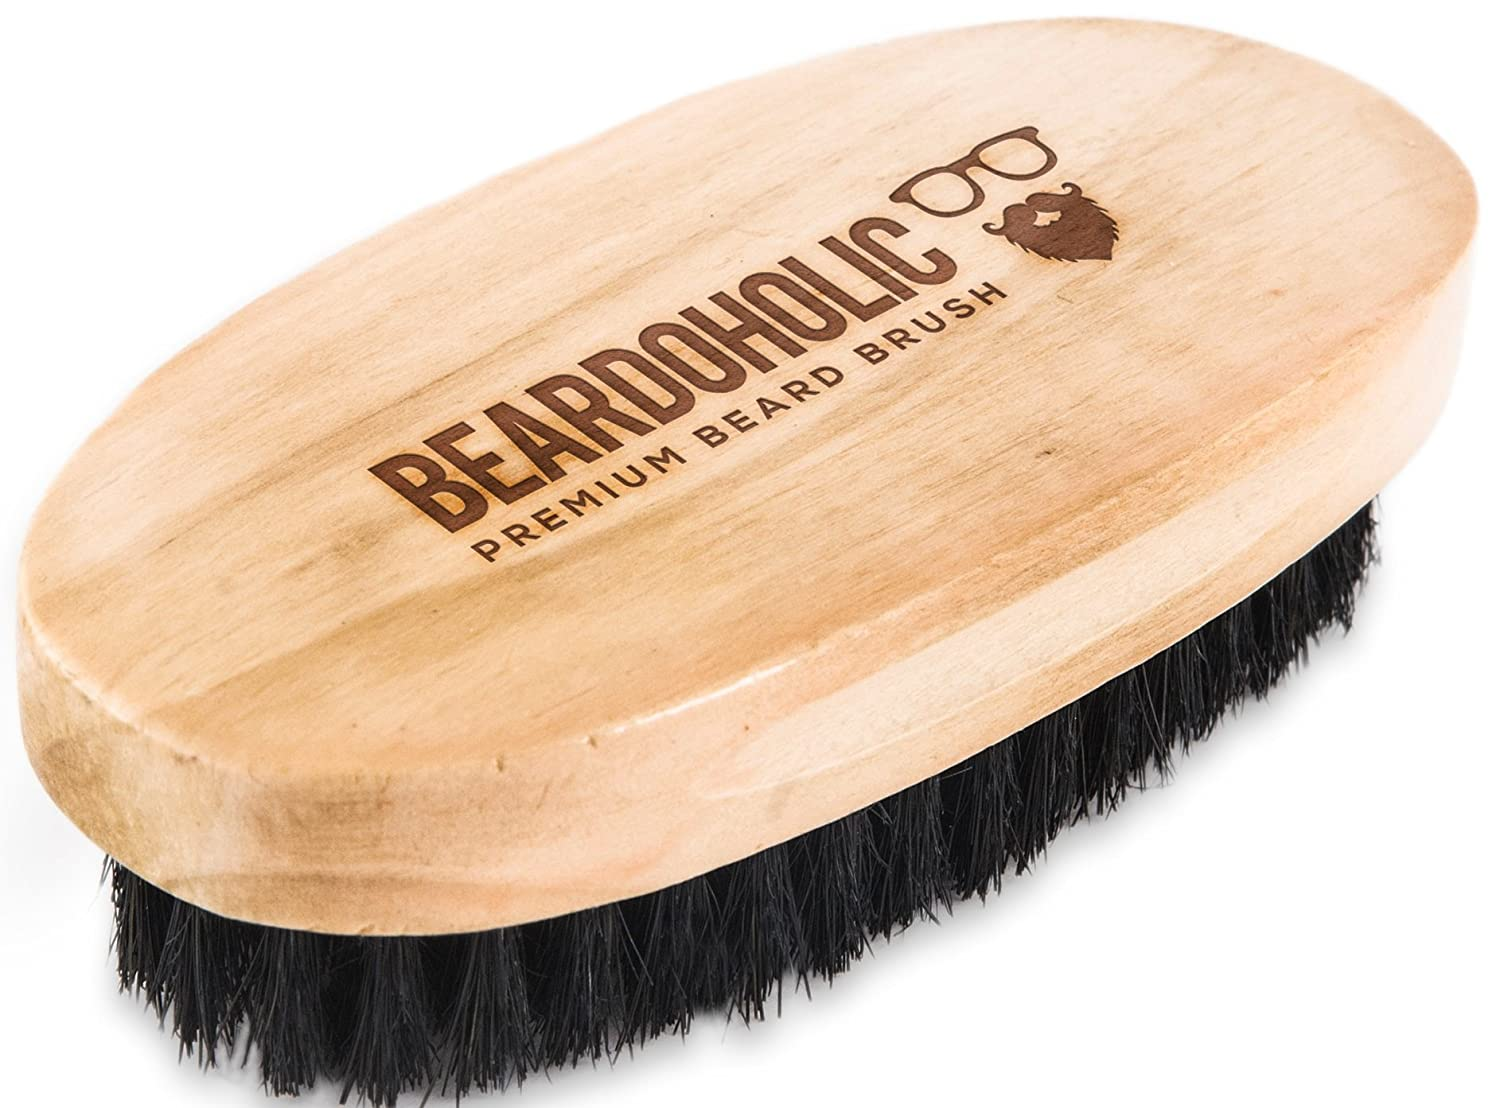 Beardoholic Boar Hair Brush - Professional Barber Brush for Grooming Detangling and Beard Health - Conditions and Evenly Distributes Natural Oils - Portable Great Gift for Bearded Men - Bamboo Wood